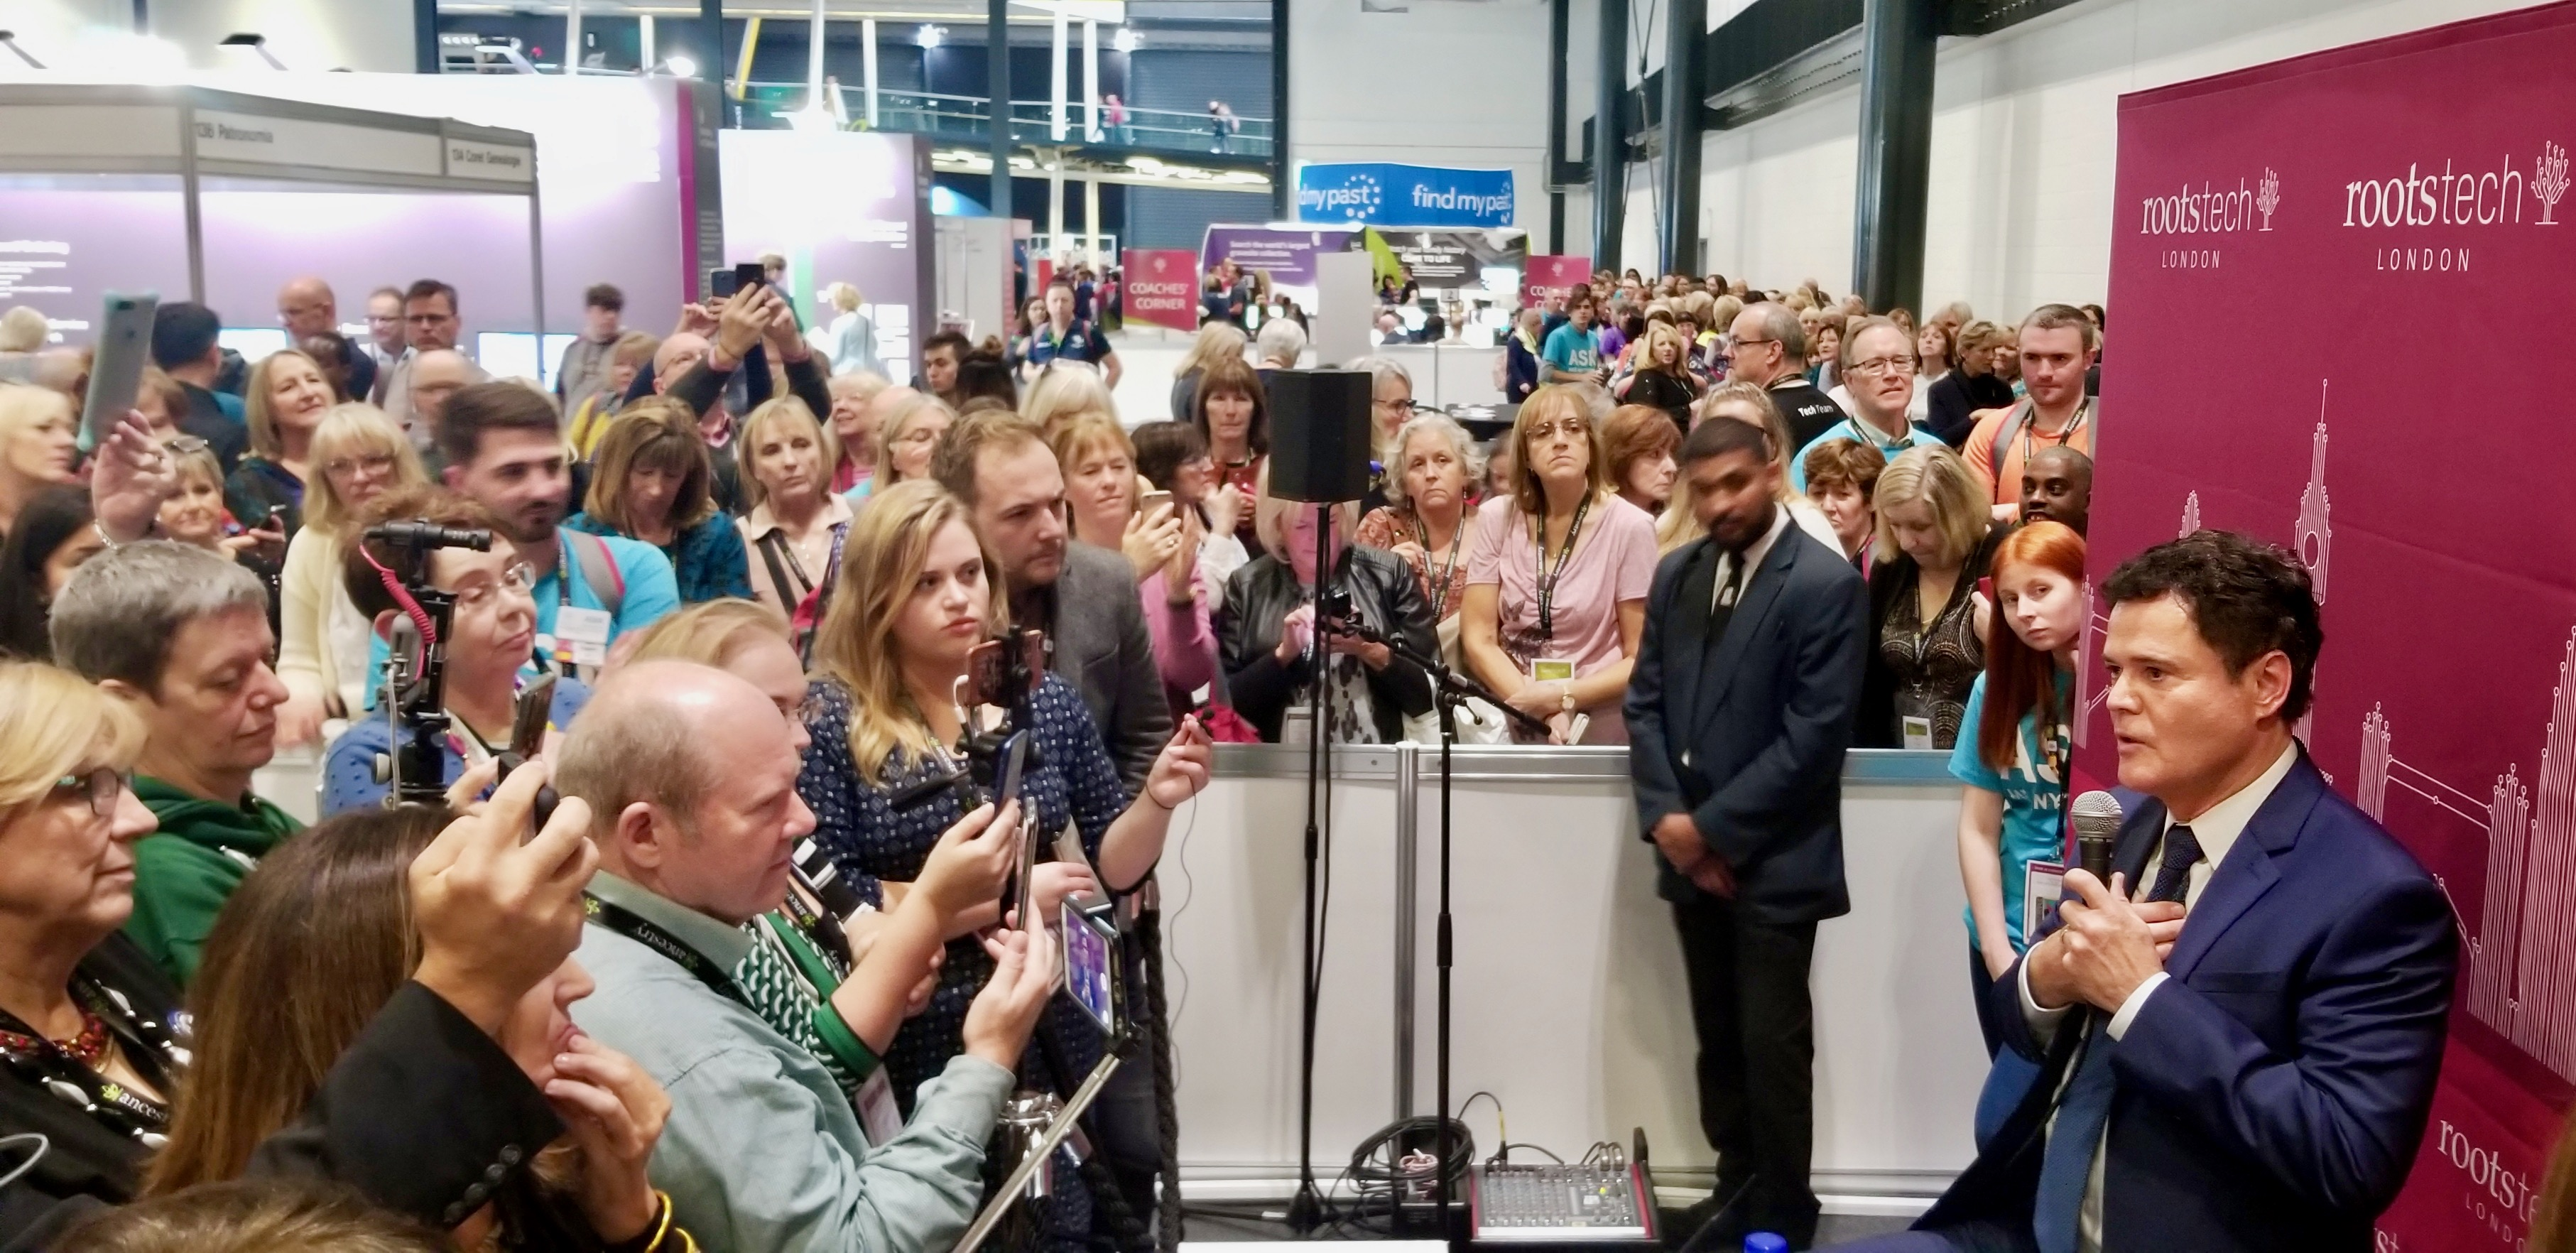 Latter-day Saint entertainer Donny Osmond, right, visits with media at RootsTech London on Oct. 26, 2019, with a long line of attendees waiting to meet him in a meet-and-greet session.